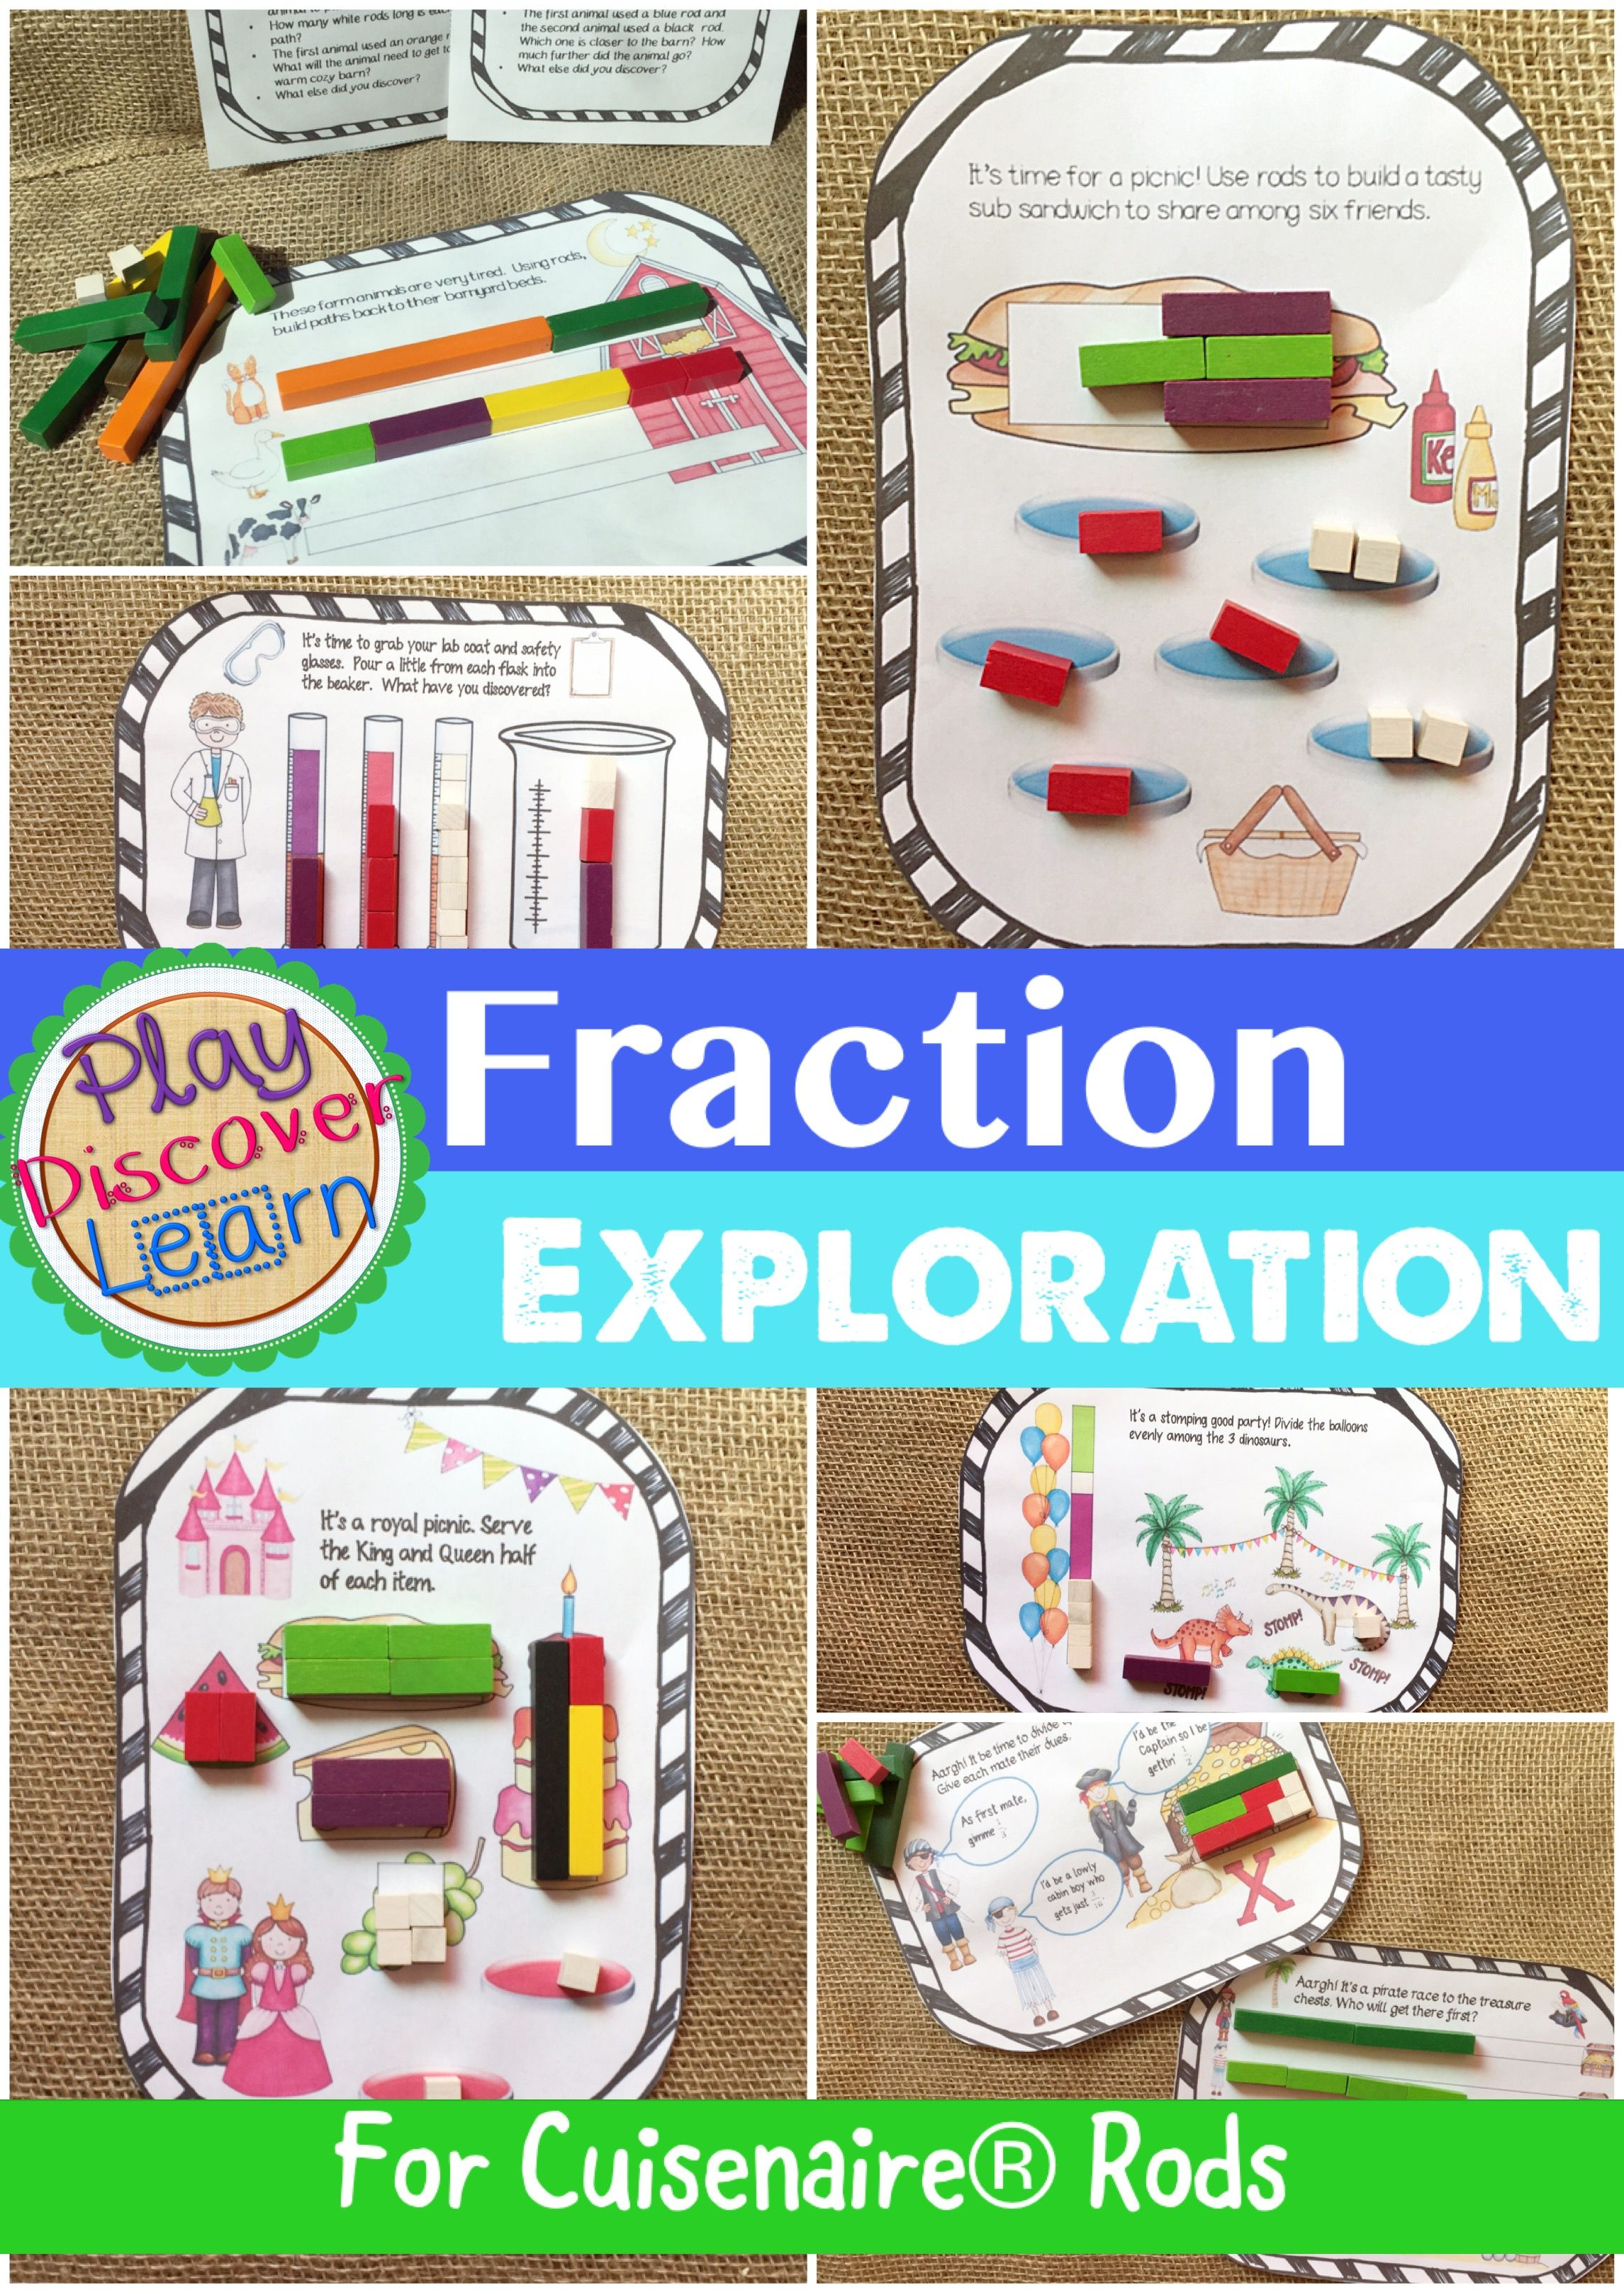 Pdl S Fraction Exploration Bundle For Cuisenaire Rods